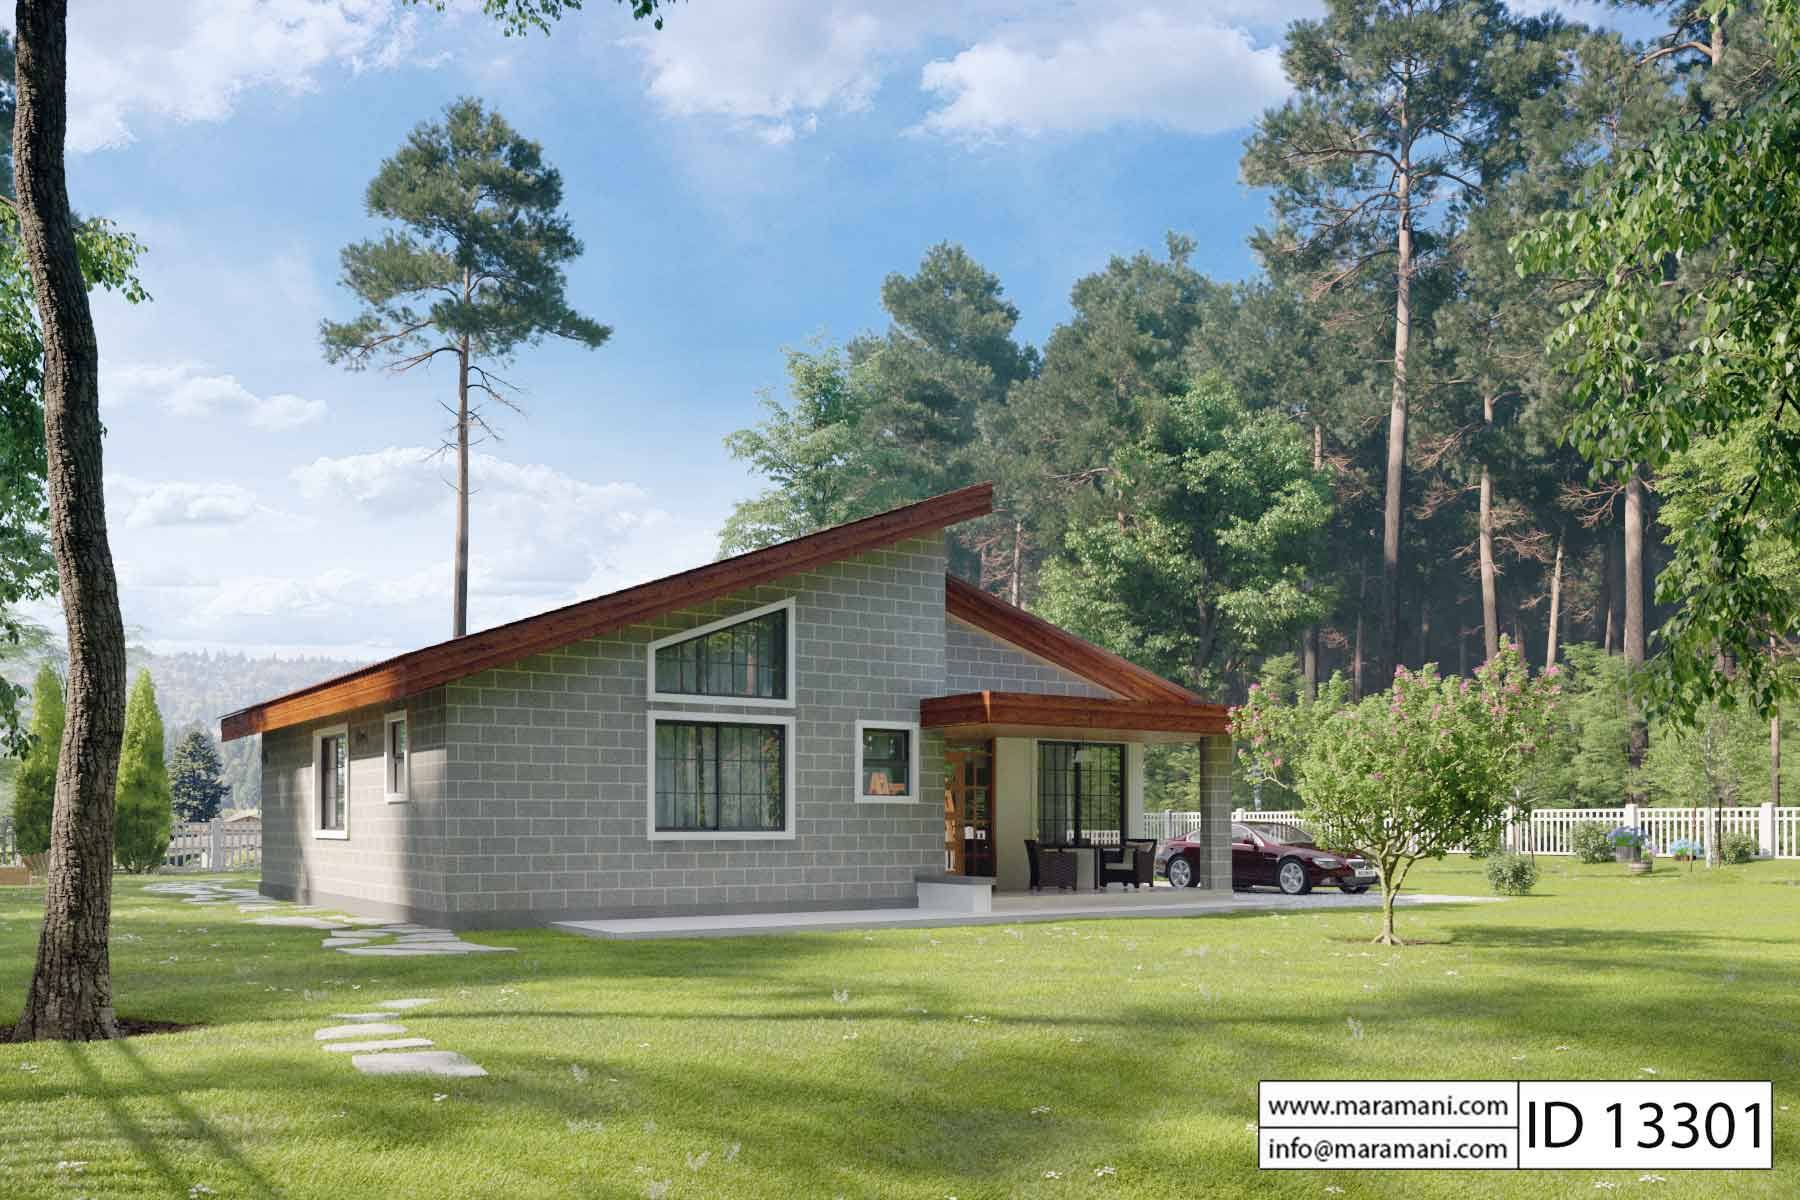 3 Bedroom Cottage Id 13301 House Designs By Maramani